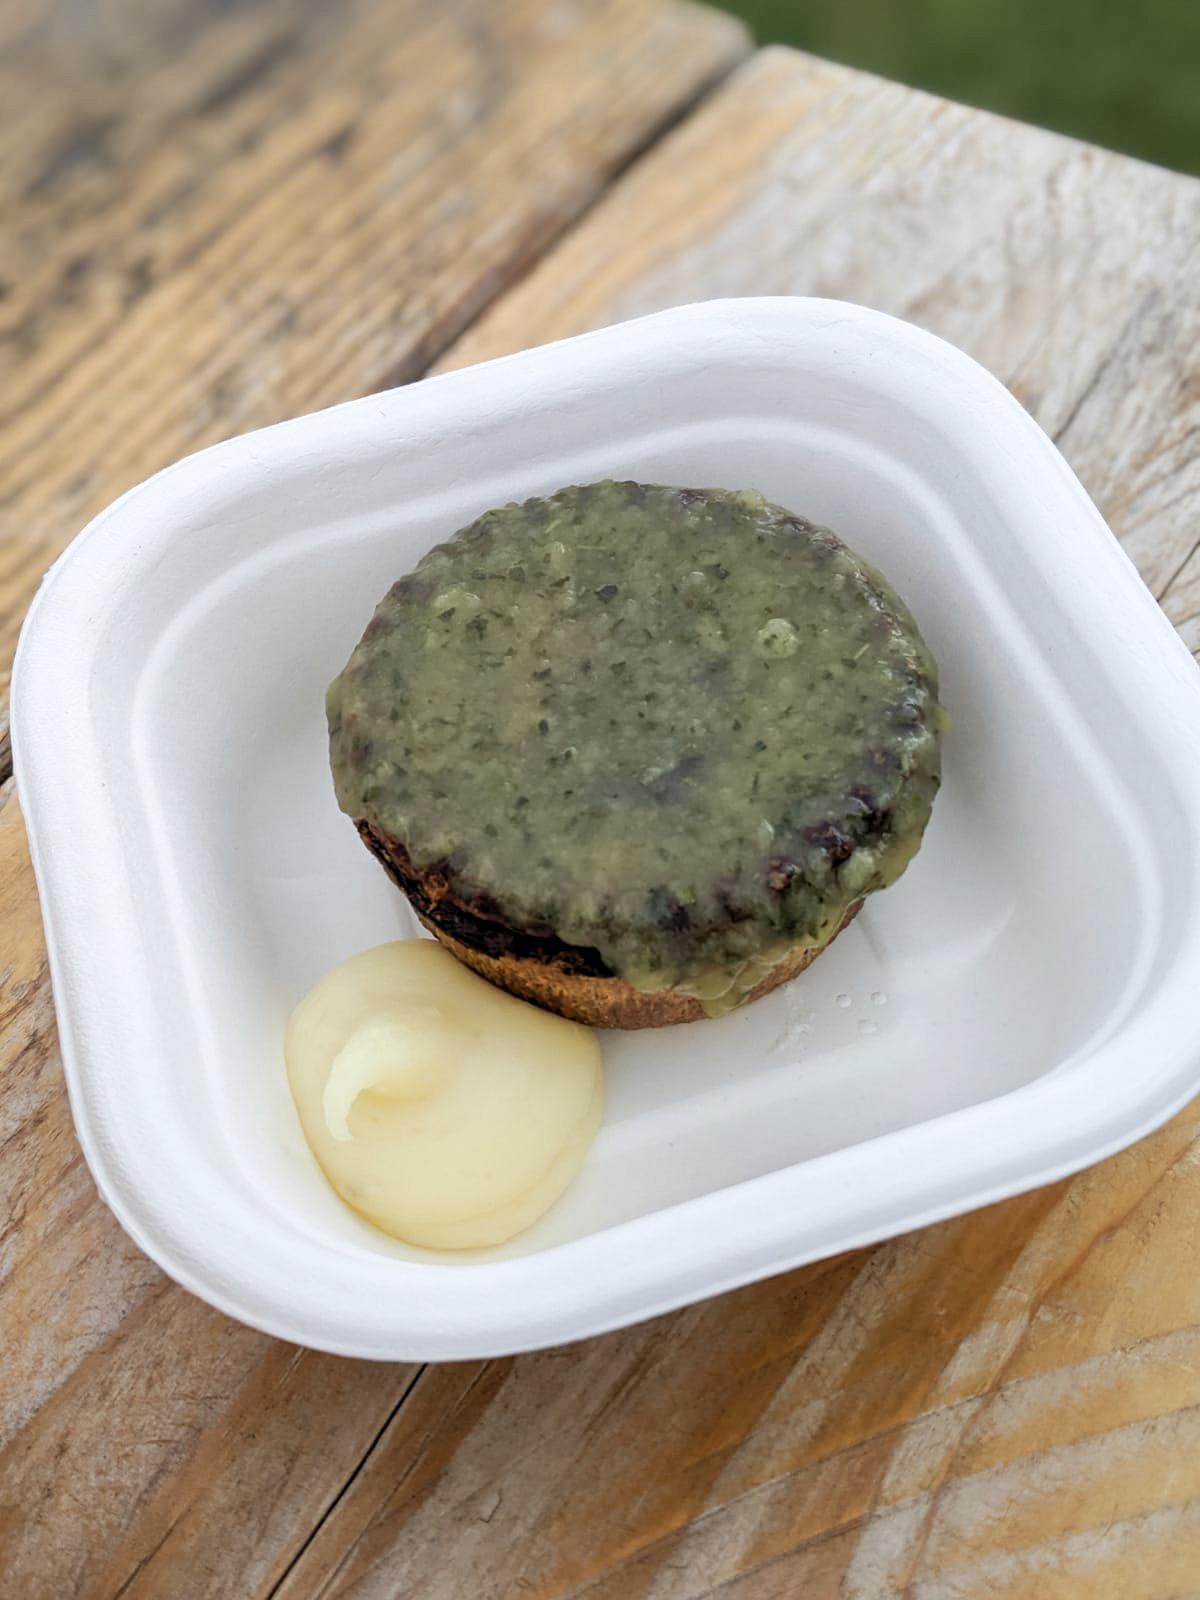 Minted Lamb Pie with mash at Pub in the Park in Rounday 2019